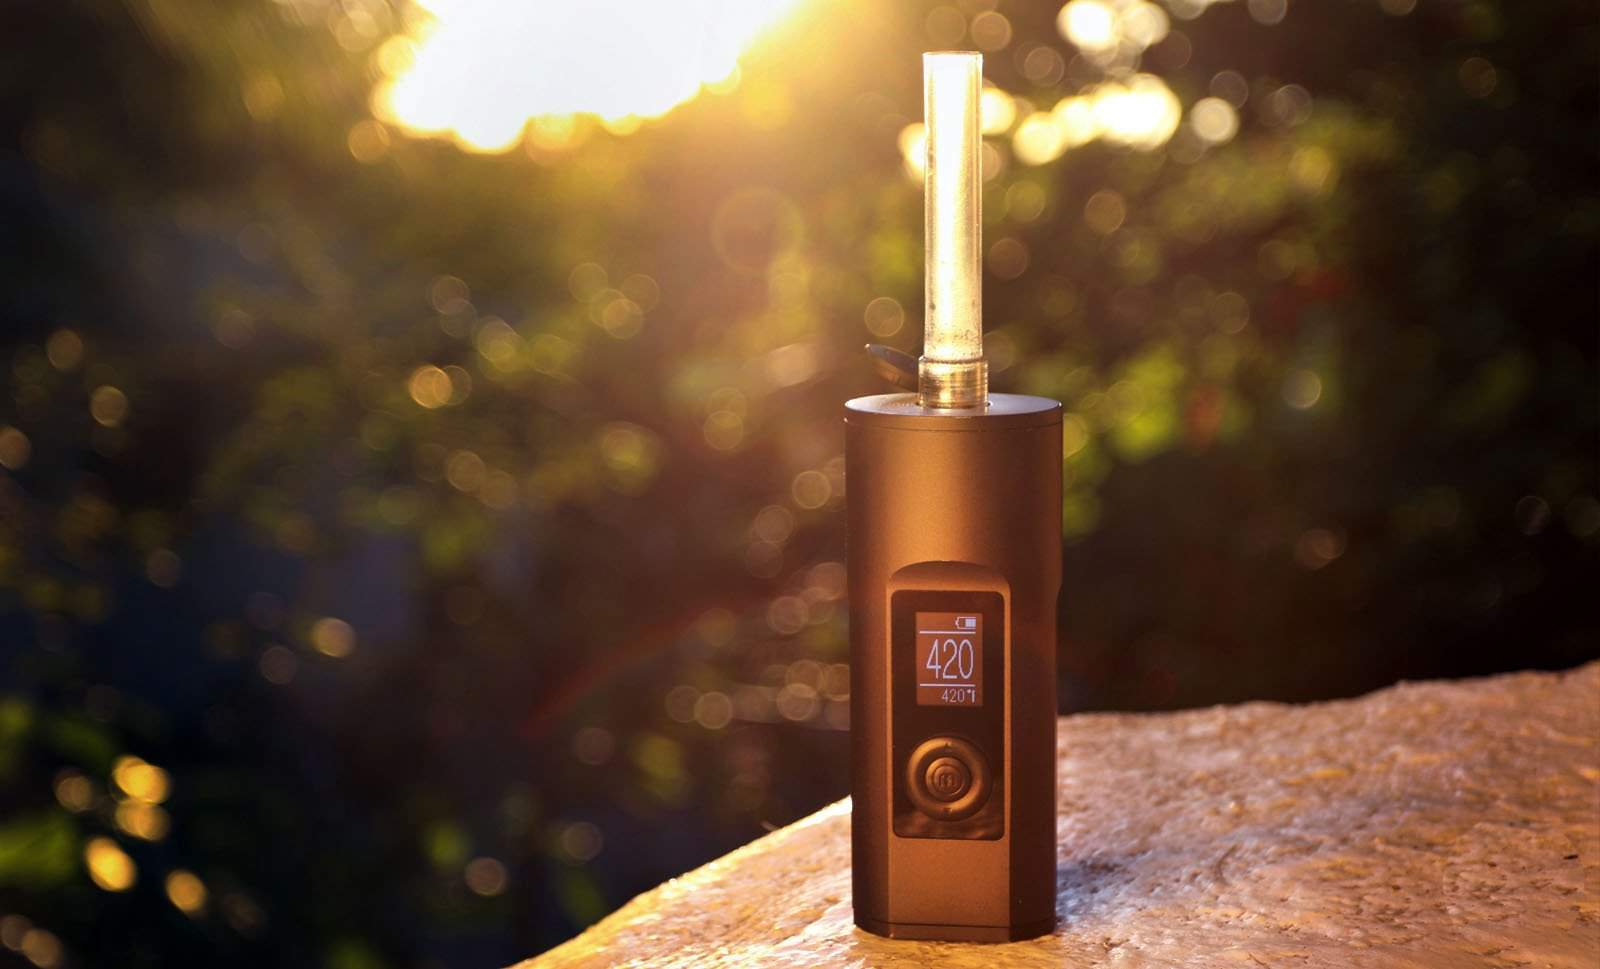 arizer solo 2 at sunset